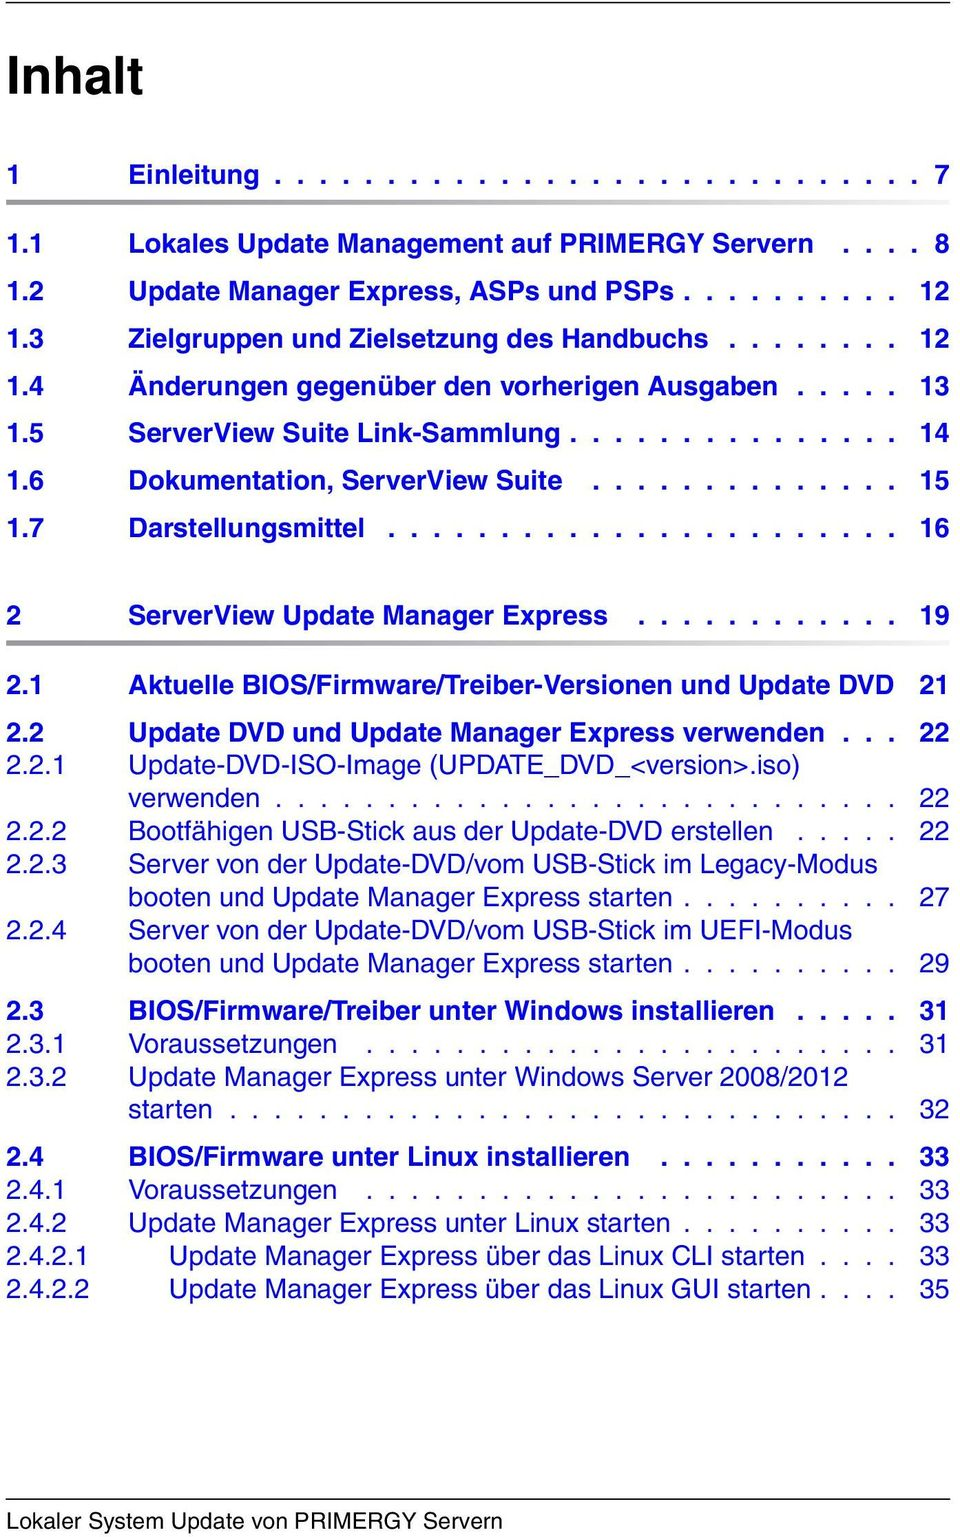 6 Dokumentation, ServerView Suite.............. 15 1.7 Darstellungsmittel....................... 16 2 ServerView Update Manager Express............ 19 2.